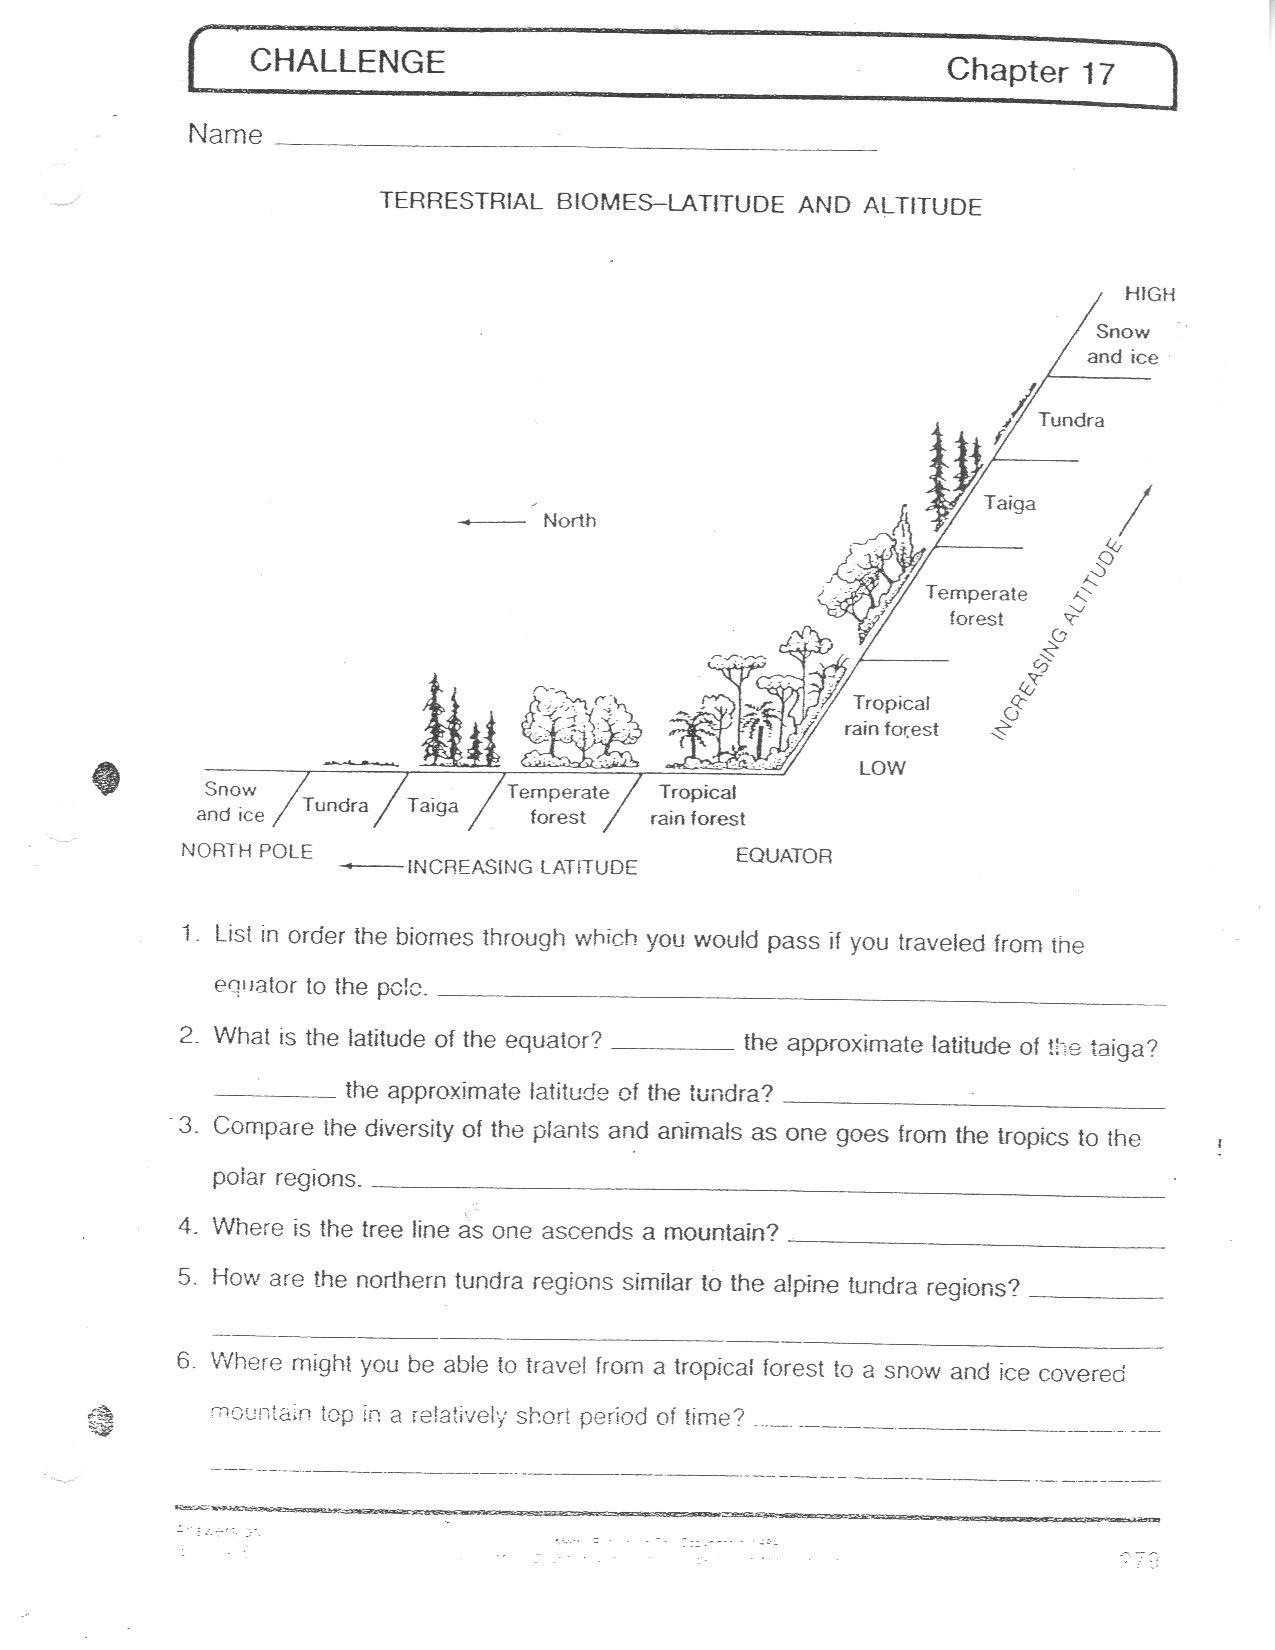 Ecology Worksheets Middle School Biomes at A Glance Worksheet Answers